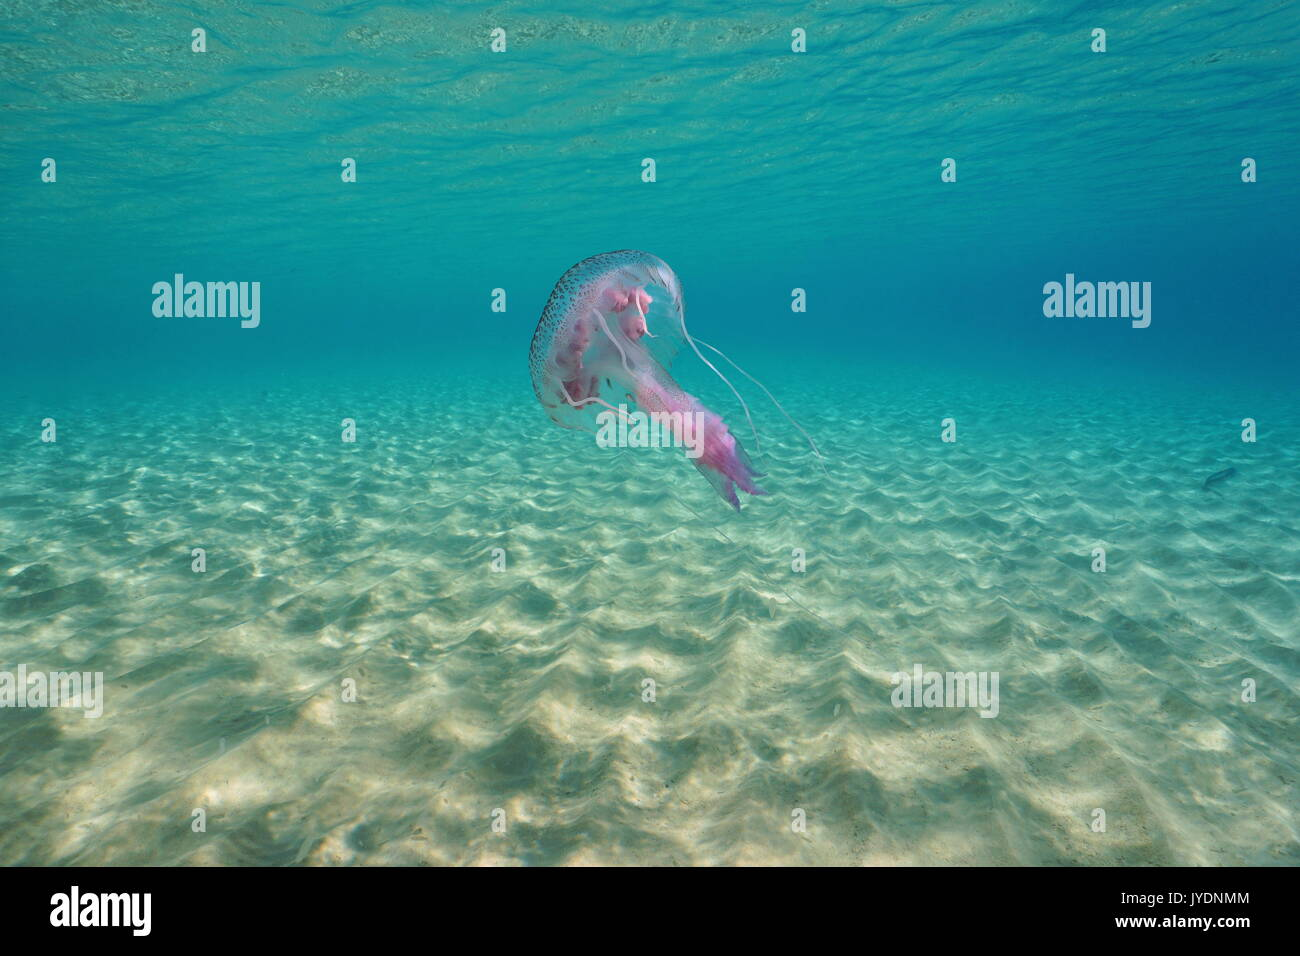 Underwater jellyfish mauve stinger Pelagia noctiluca between a sandy seabed and water surface, Mediterranean sea, Spain, Costa Brava, Catalonia - Stock Image